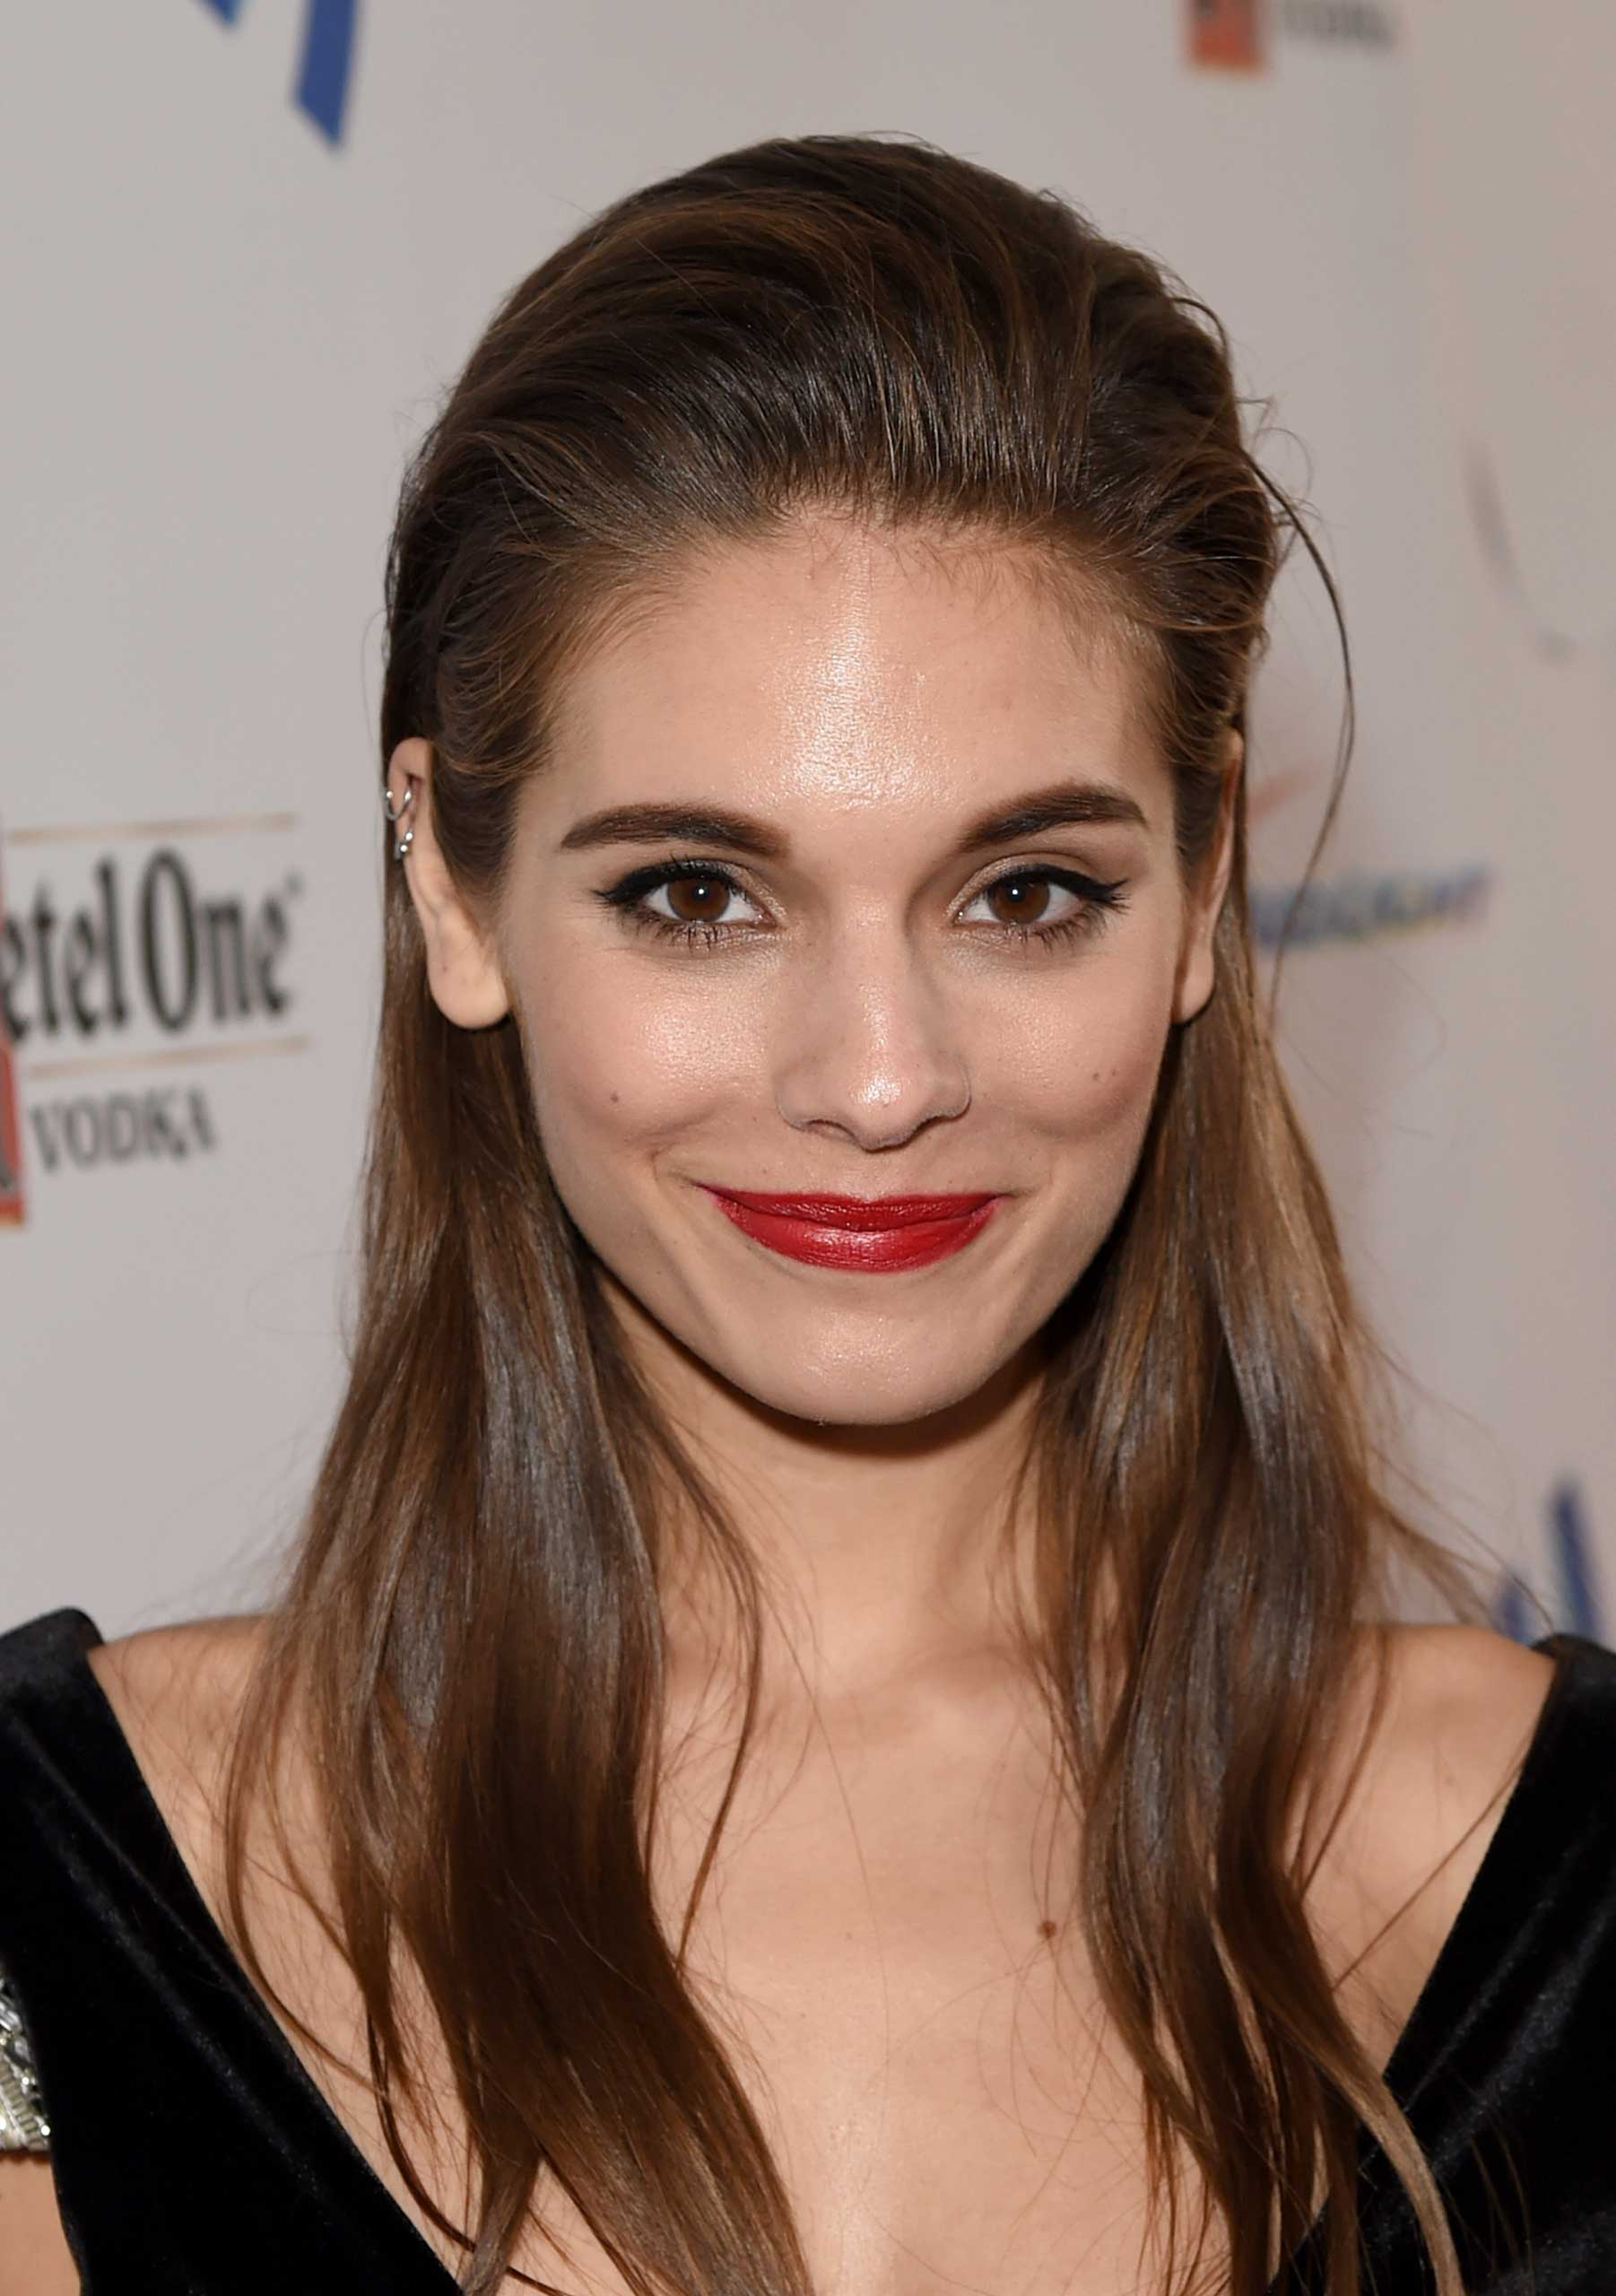 Actress Caitlin Stasey attends the 25th Annual GLAAD Media Awards at The Beverly Hilton Hotel in Los Angeles on April 12, 2014.